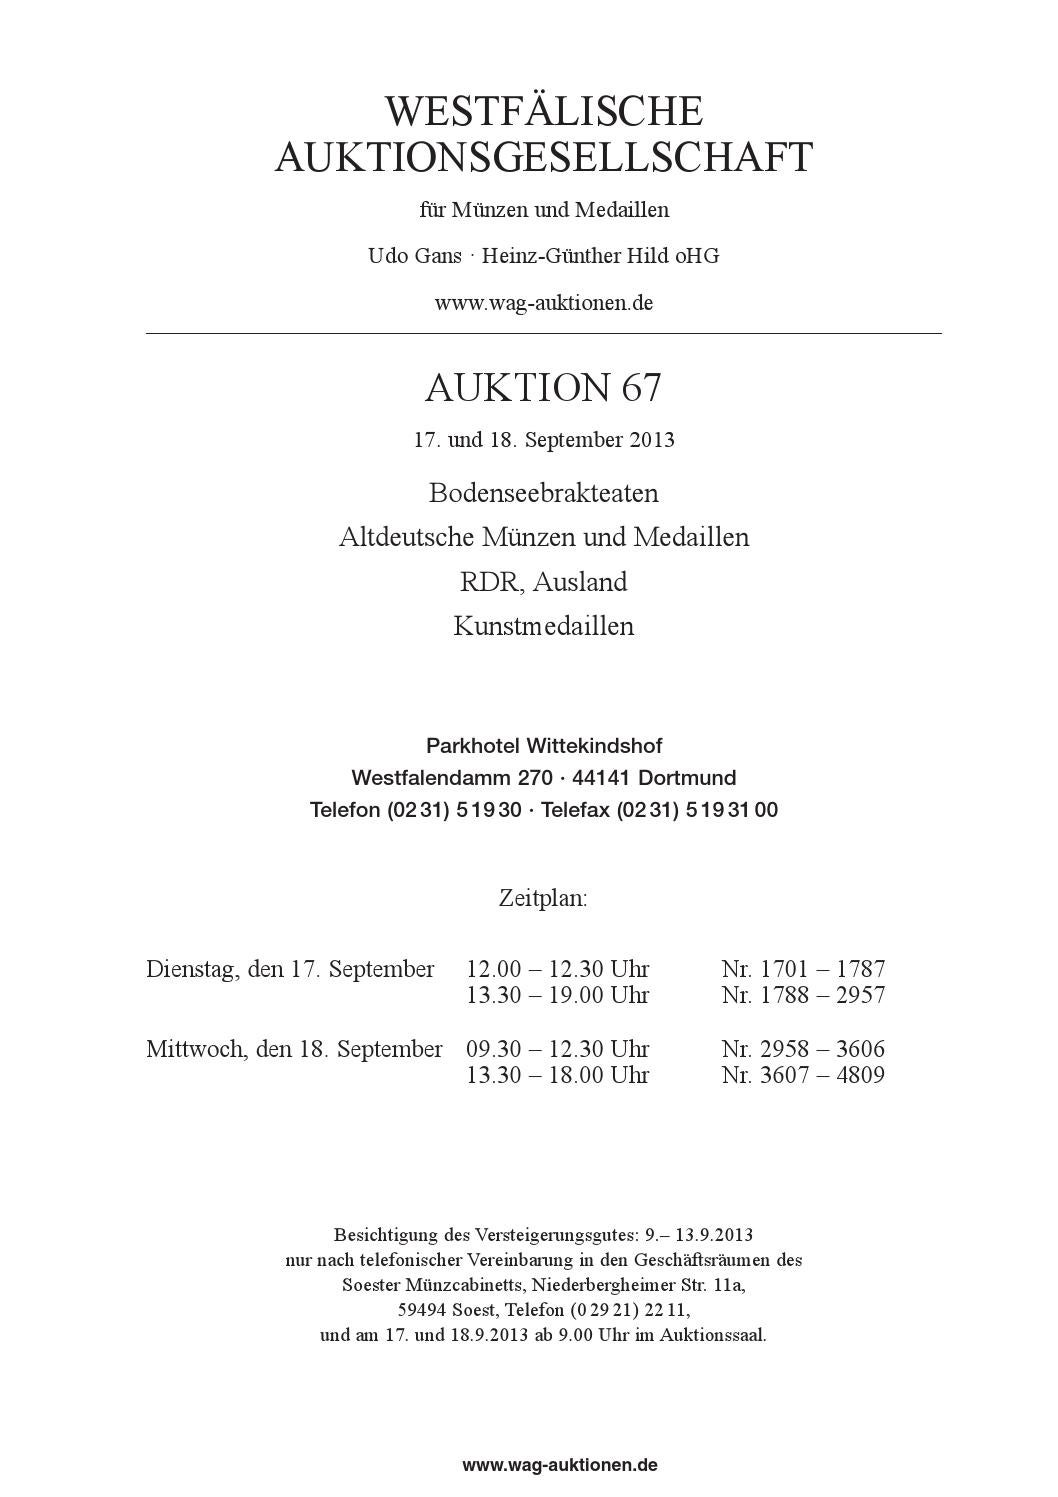 WAG Auktion 67 - Teil 1 / part 1 by WAG - issuu